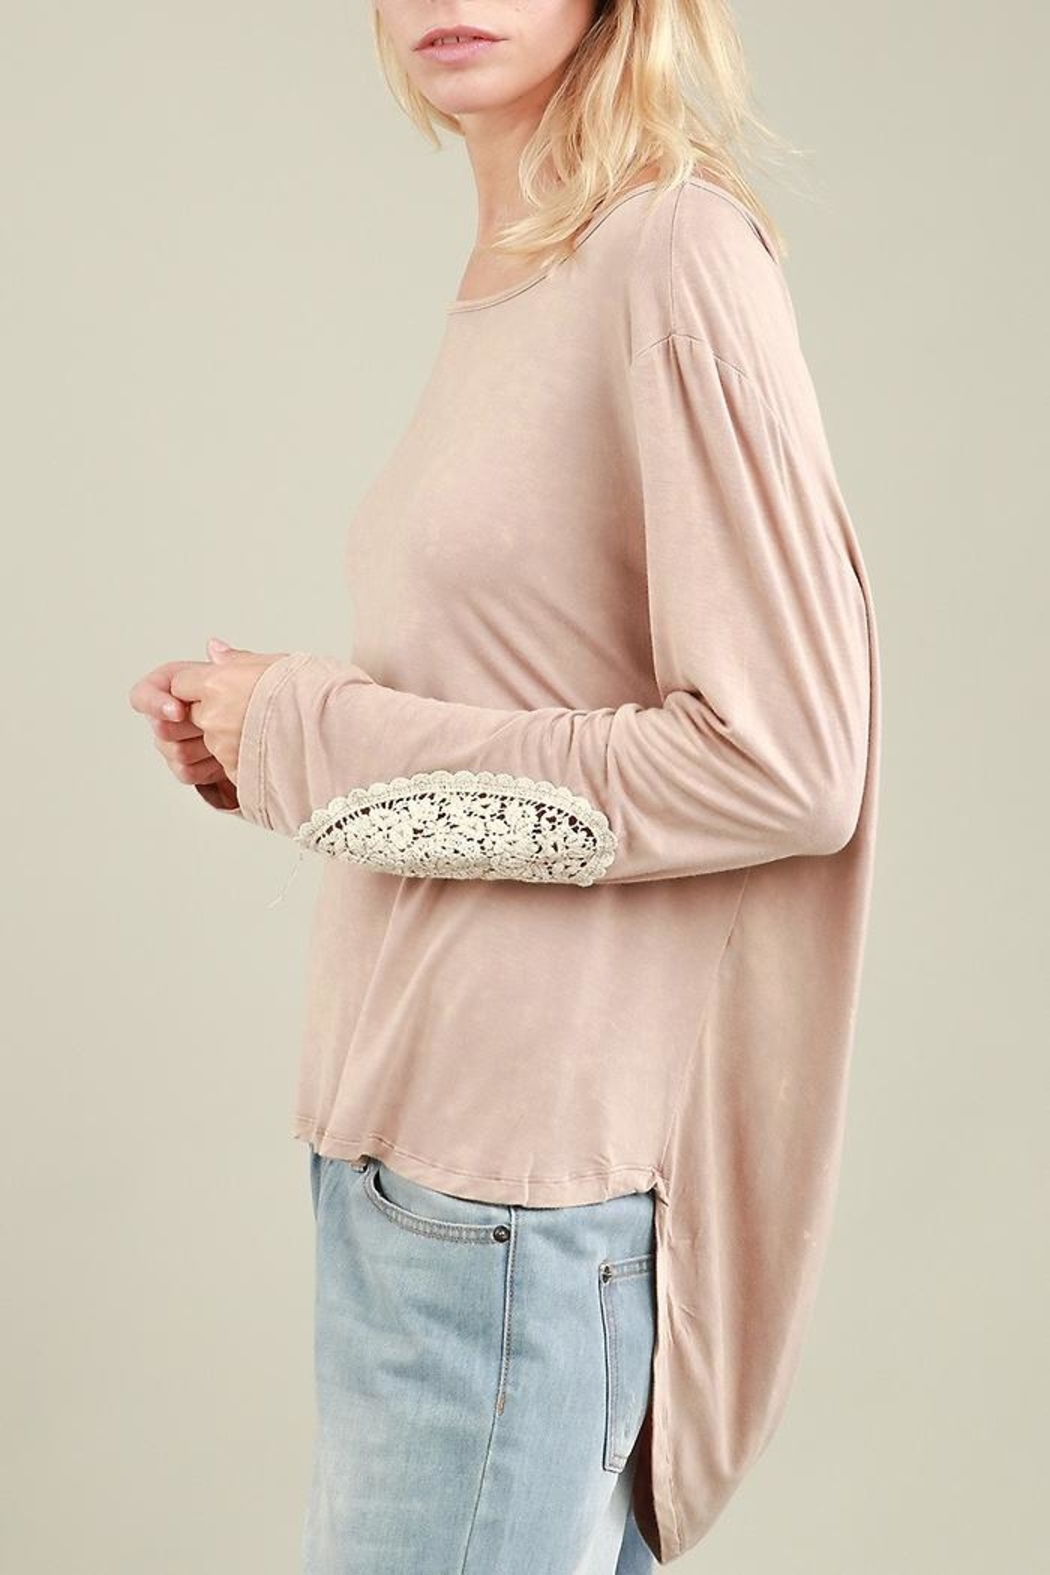 People Outfitter Alice Vintage Top - Side Cropped Image